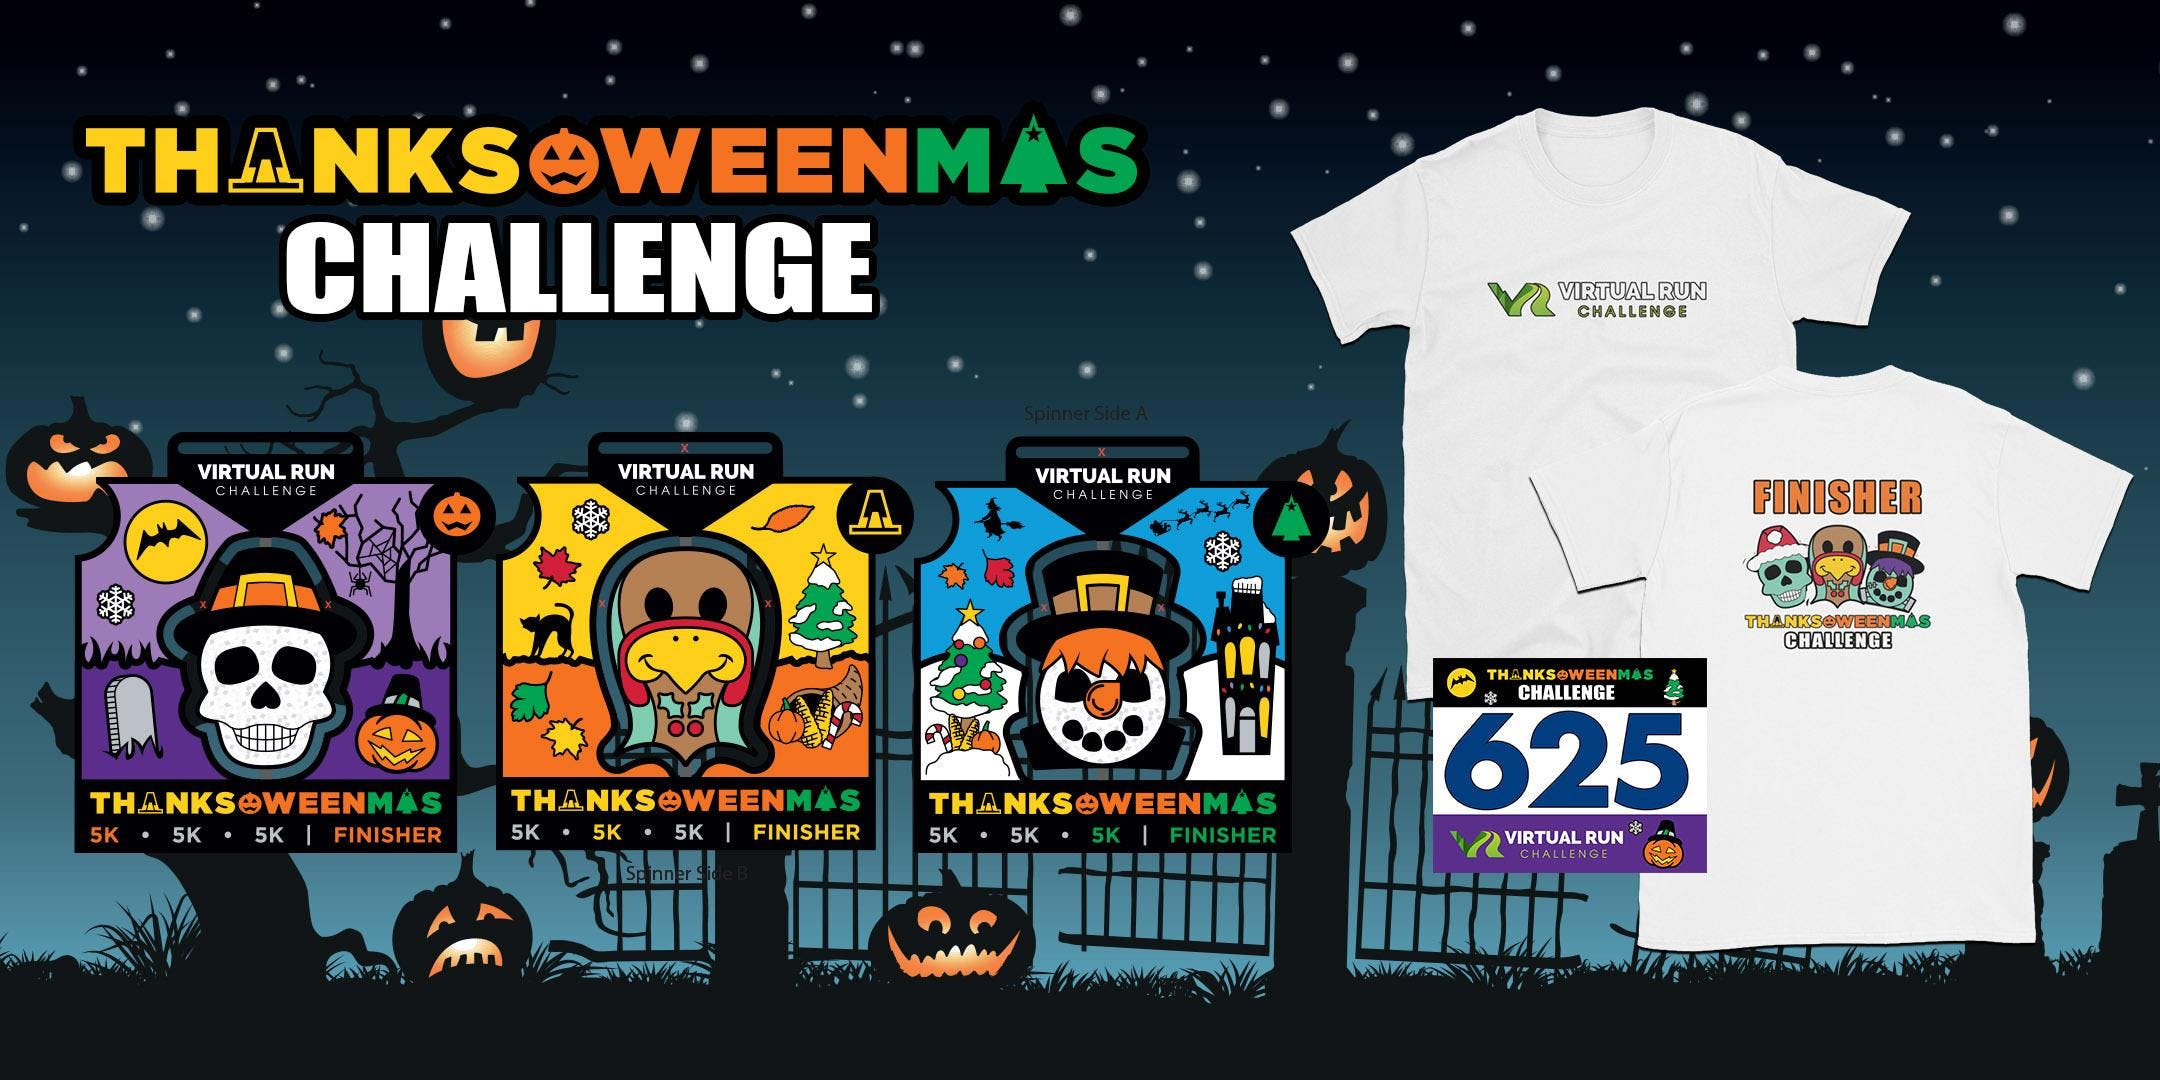 2019 - Thanks-Oween-Mas Virtual 5k Challenge - Tempe